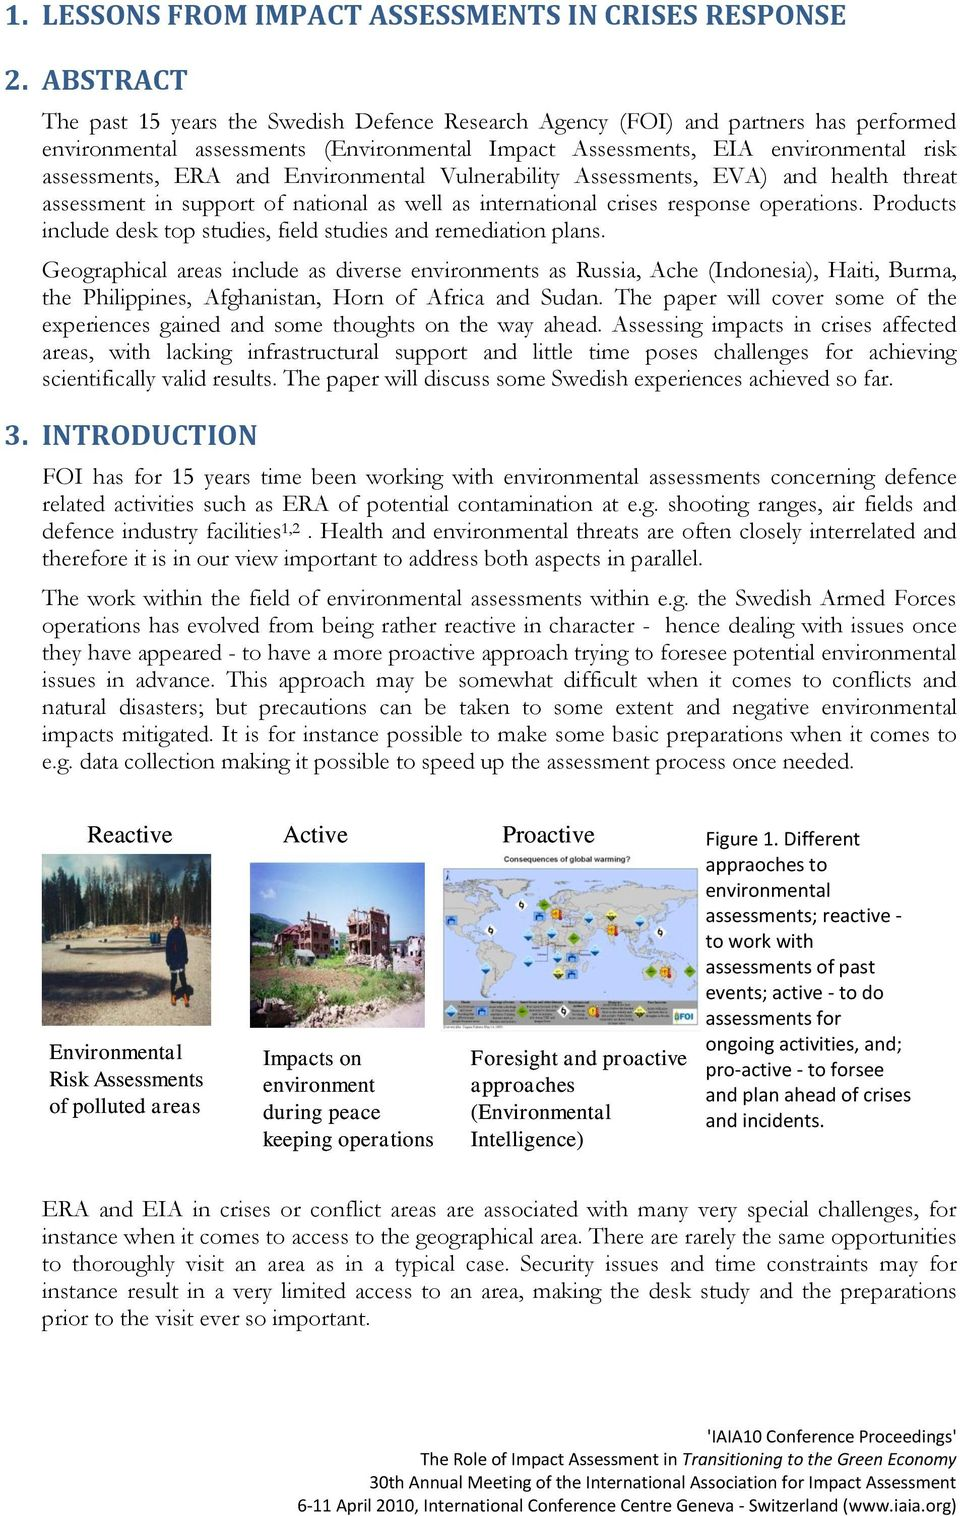 and Environmental Vulnerability Assessments, EVA) and health threat assessment in support of national as well as international crises response operations.